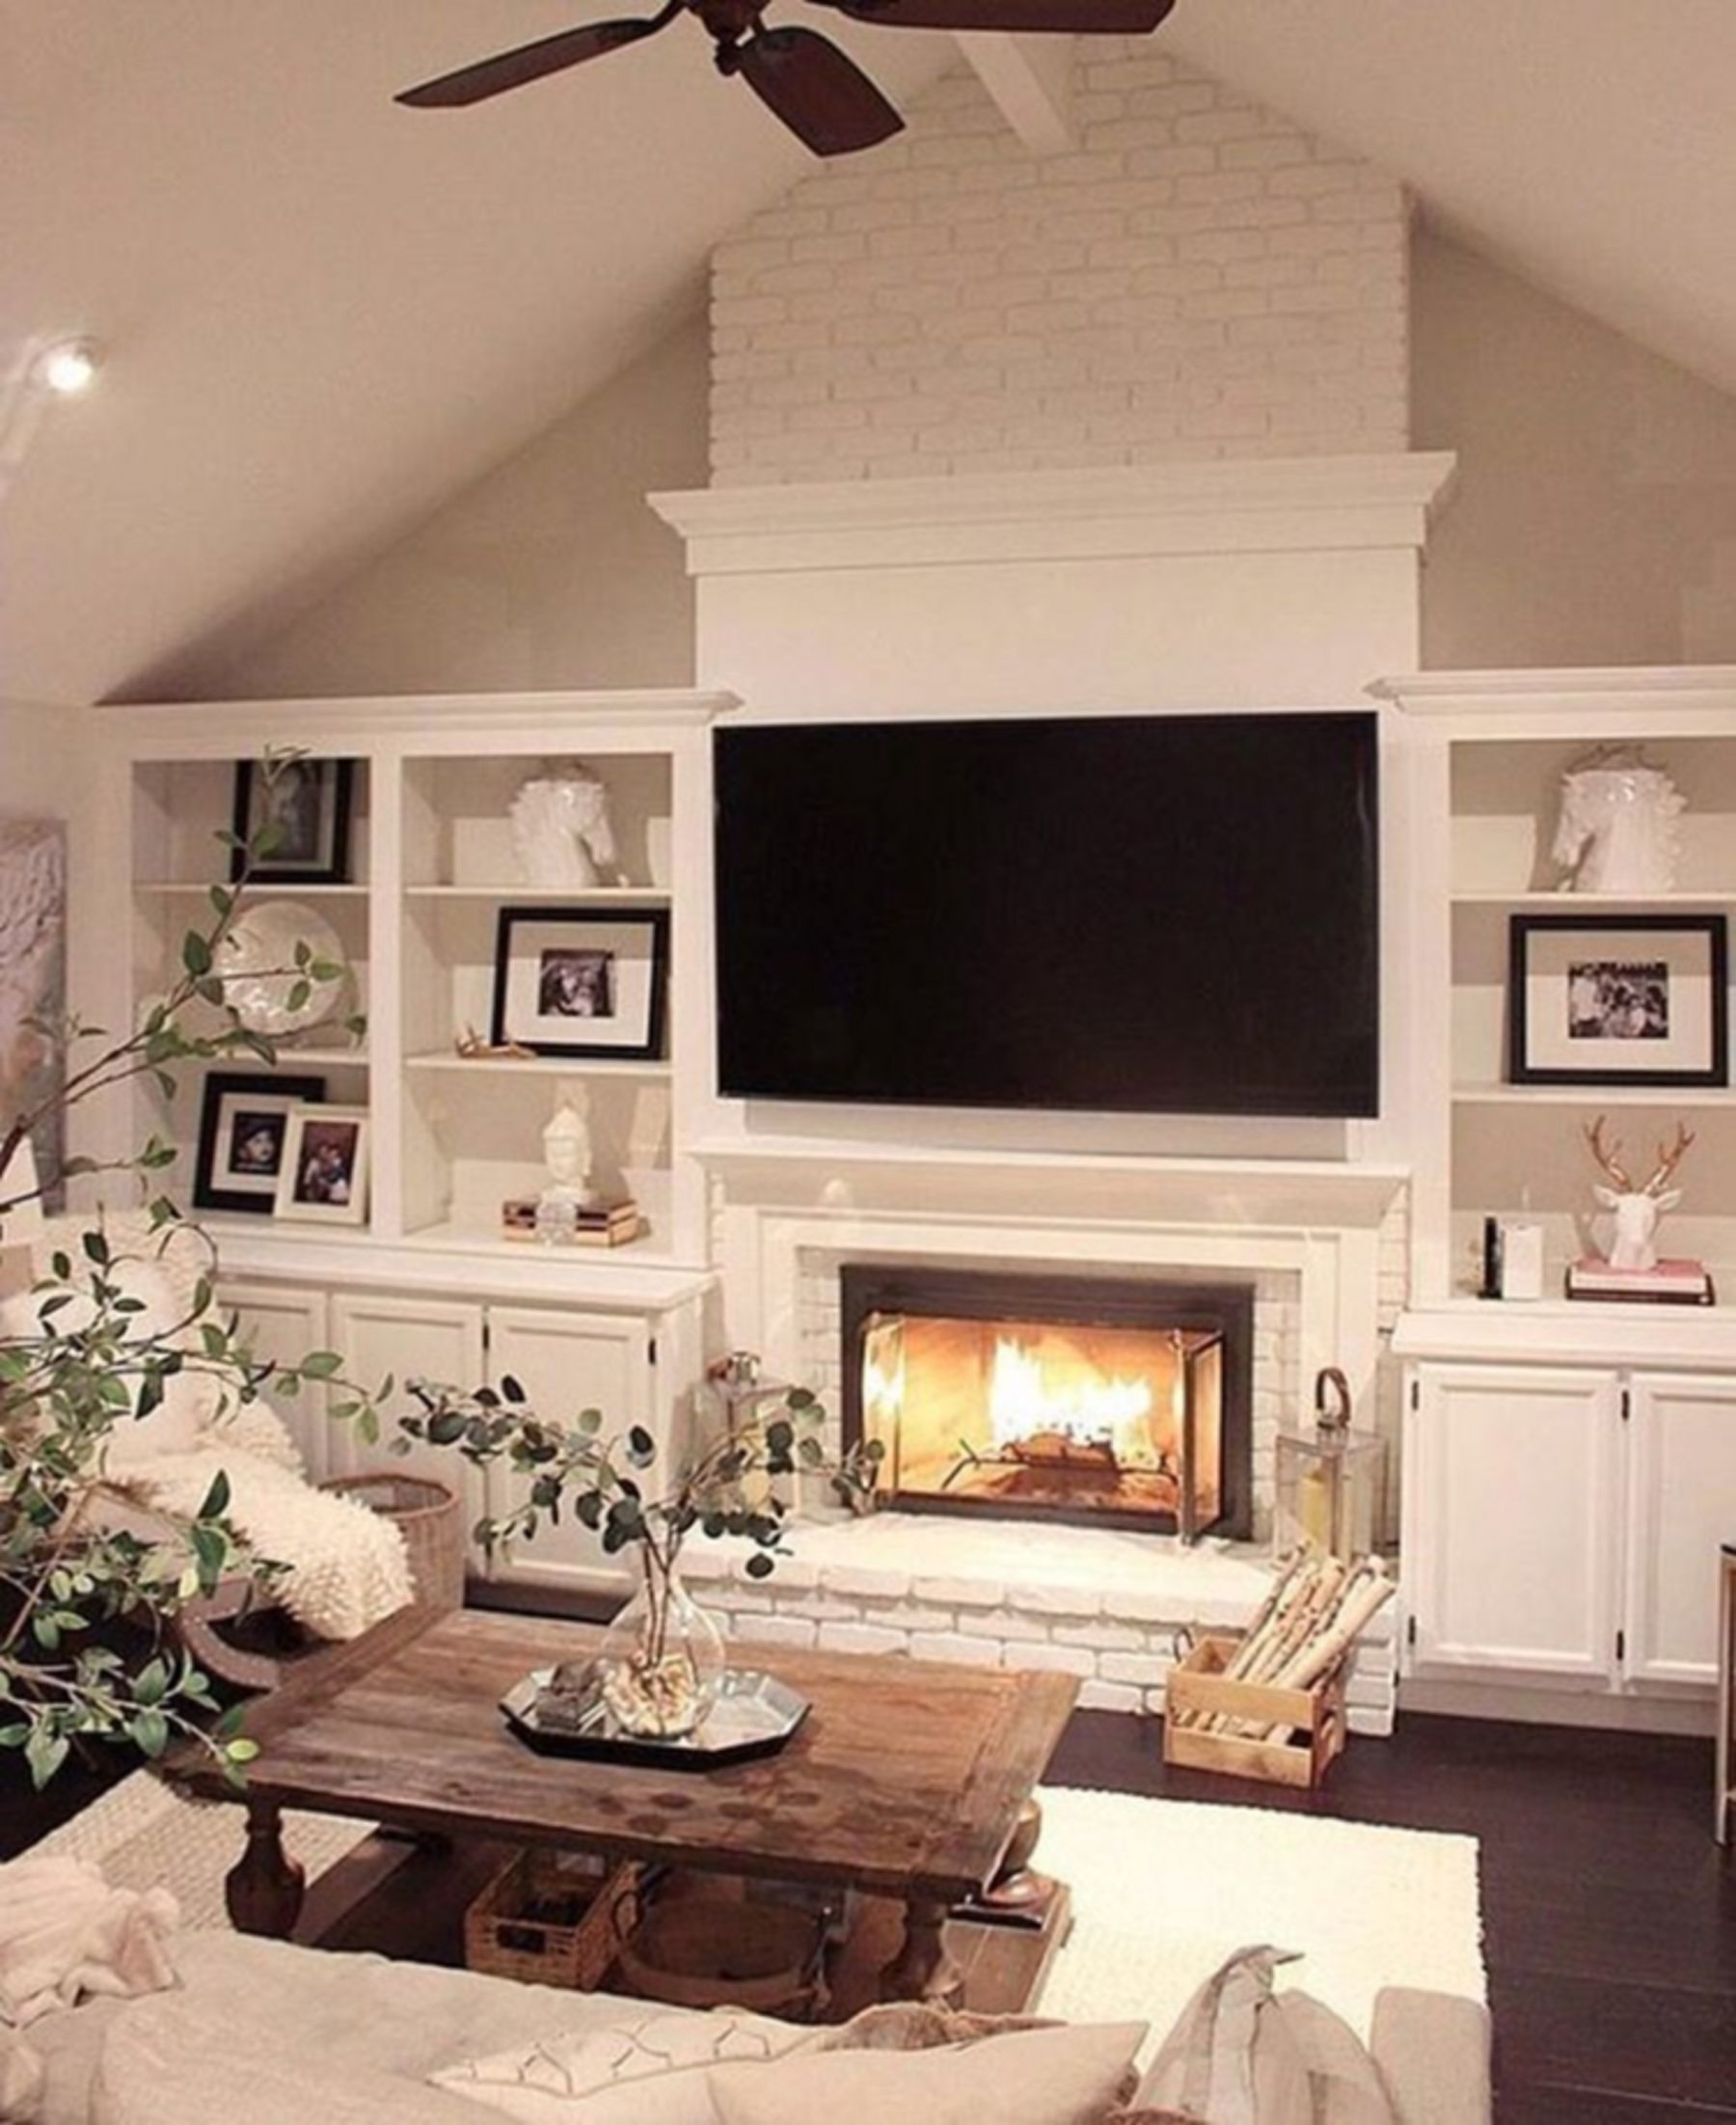 25 Lovely Farmhouse Living Room With Awesome Fireplace Ideas images